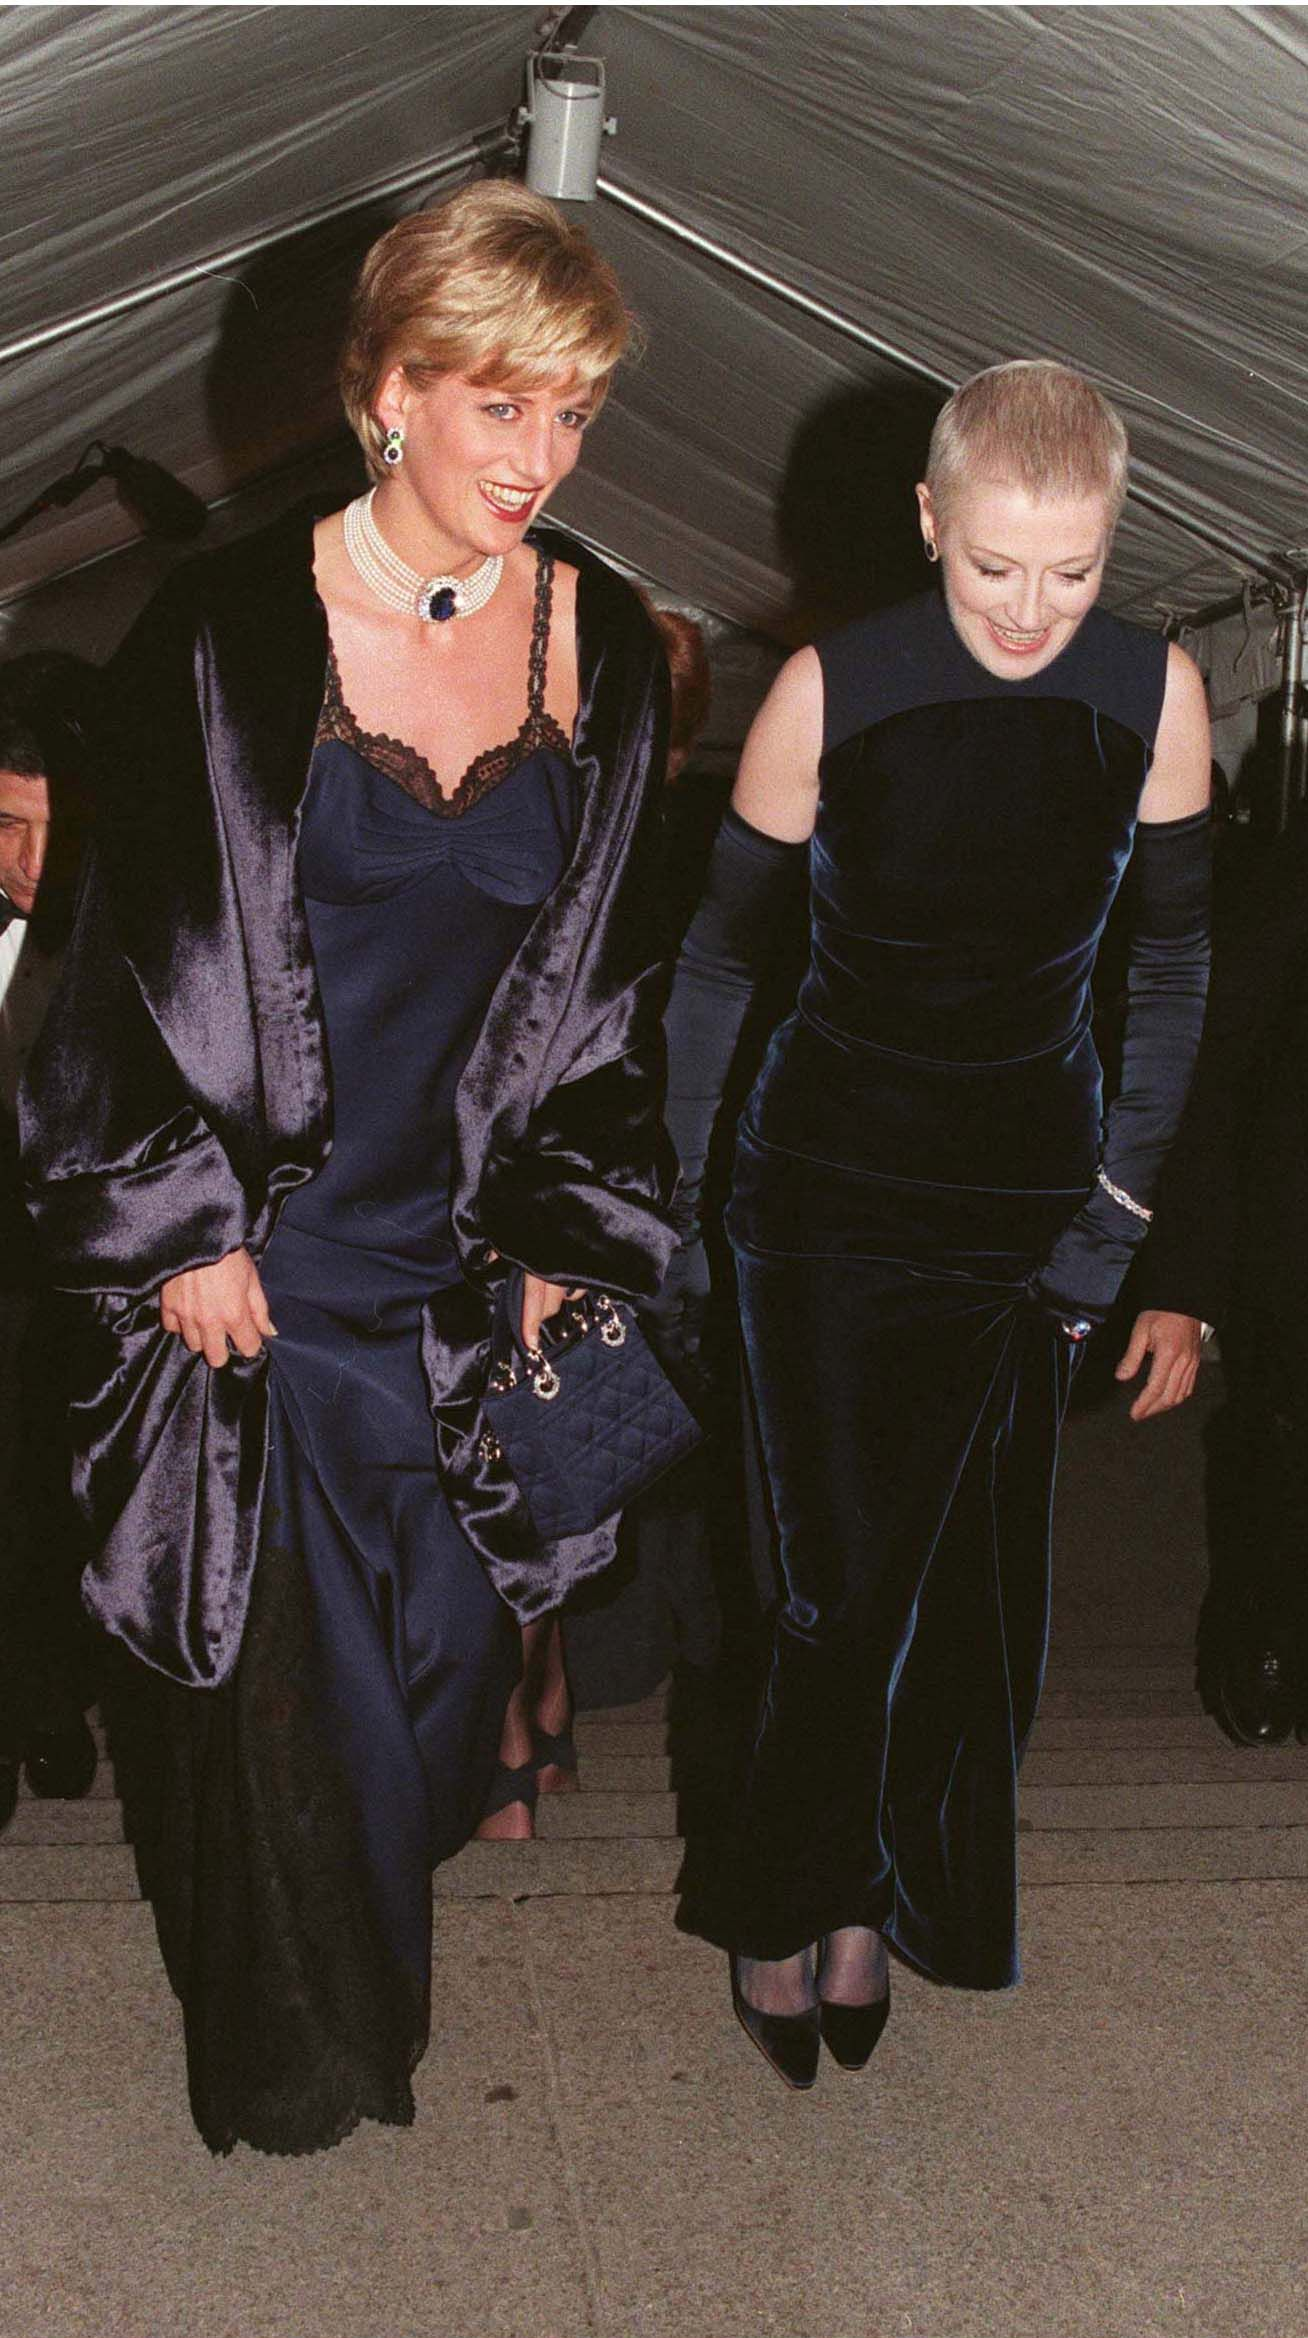 NEW YORK - DECEMBER 09:  Diana, Princess of Wales, wearing a John Galliano dress, arrives with her friend Liz Tilberis for a Costume Institute Ball at the Metropolitan Museum of Art on December 09, 1996 in New York, USA. (Photo by Anwar Hussein/Getty Images)